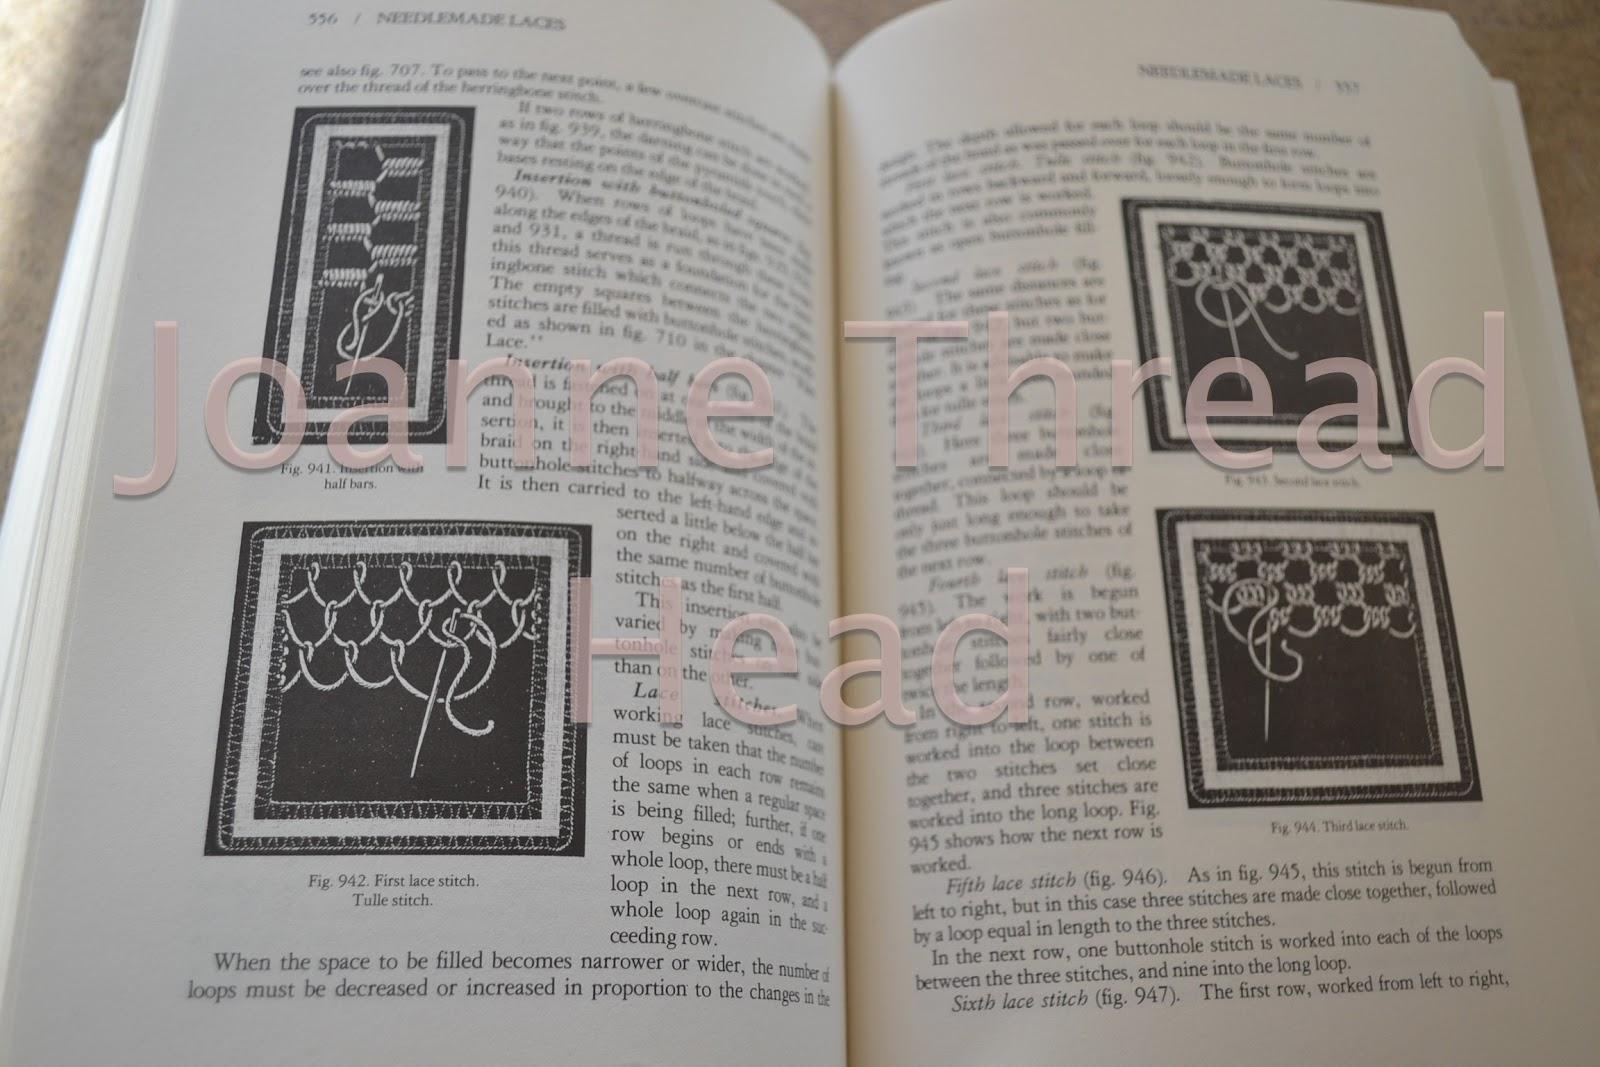 Romanian Point Lace Books http://joanne-threadhead.blogspot.com/2012/04/romanian-point-lace-overview.html